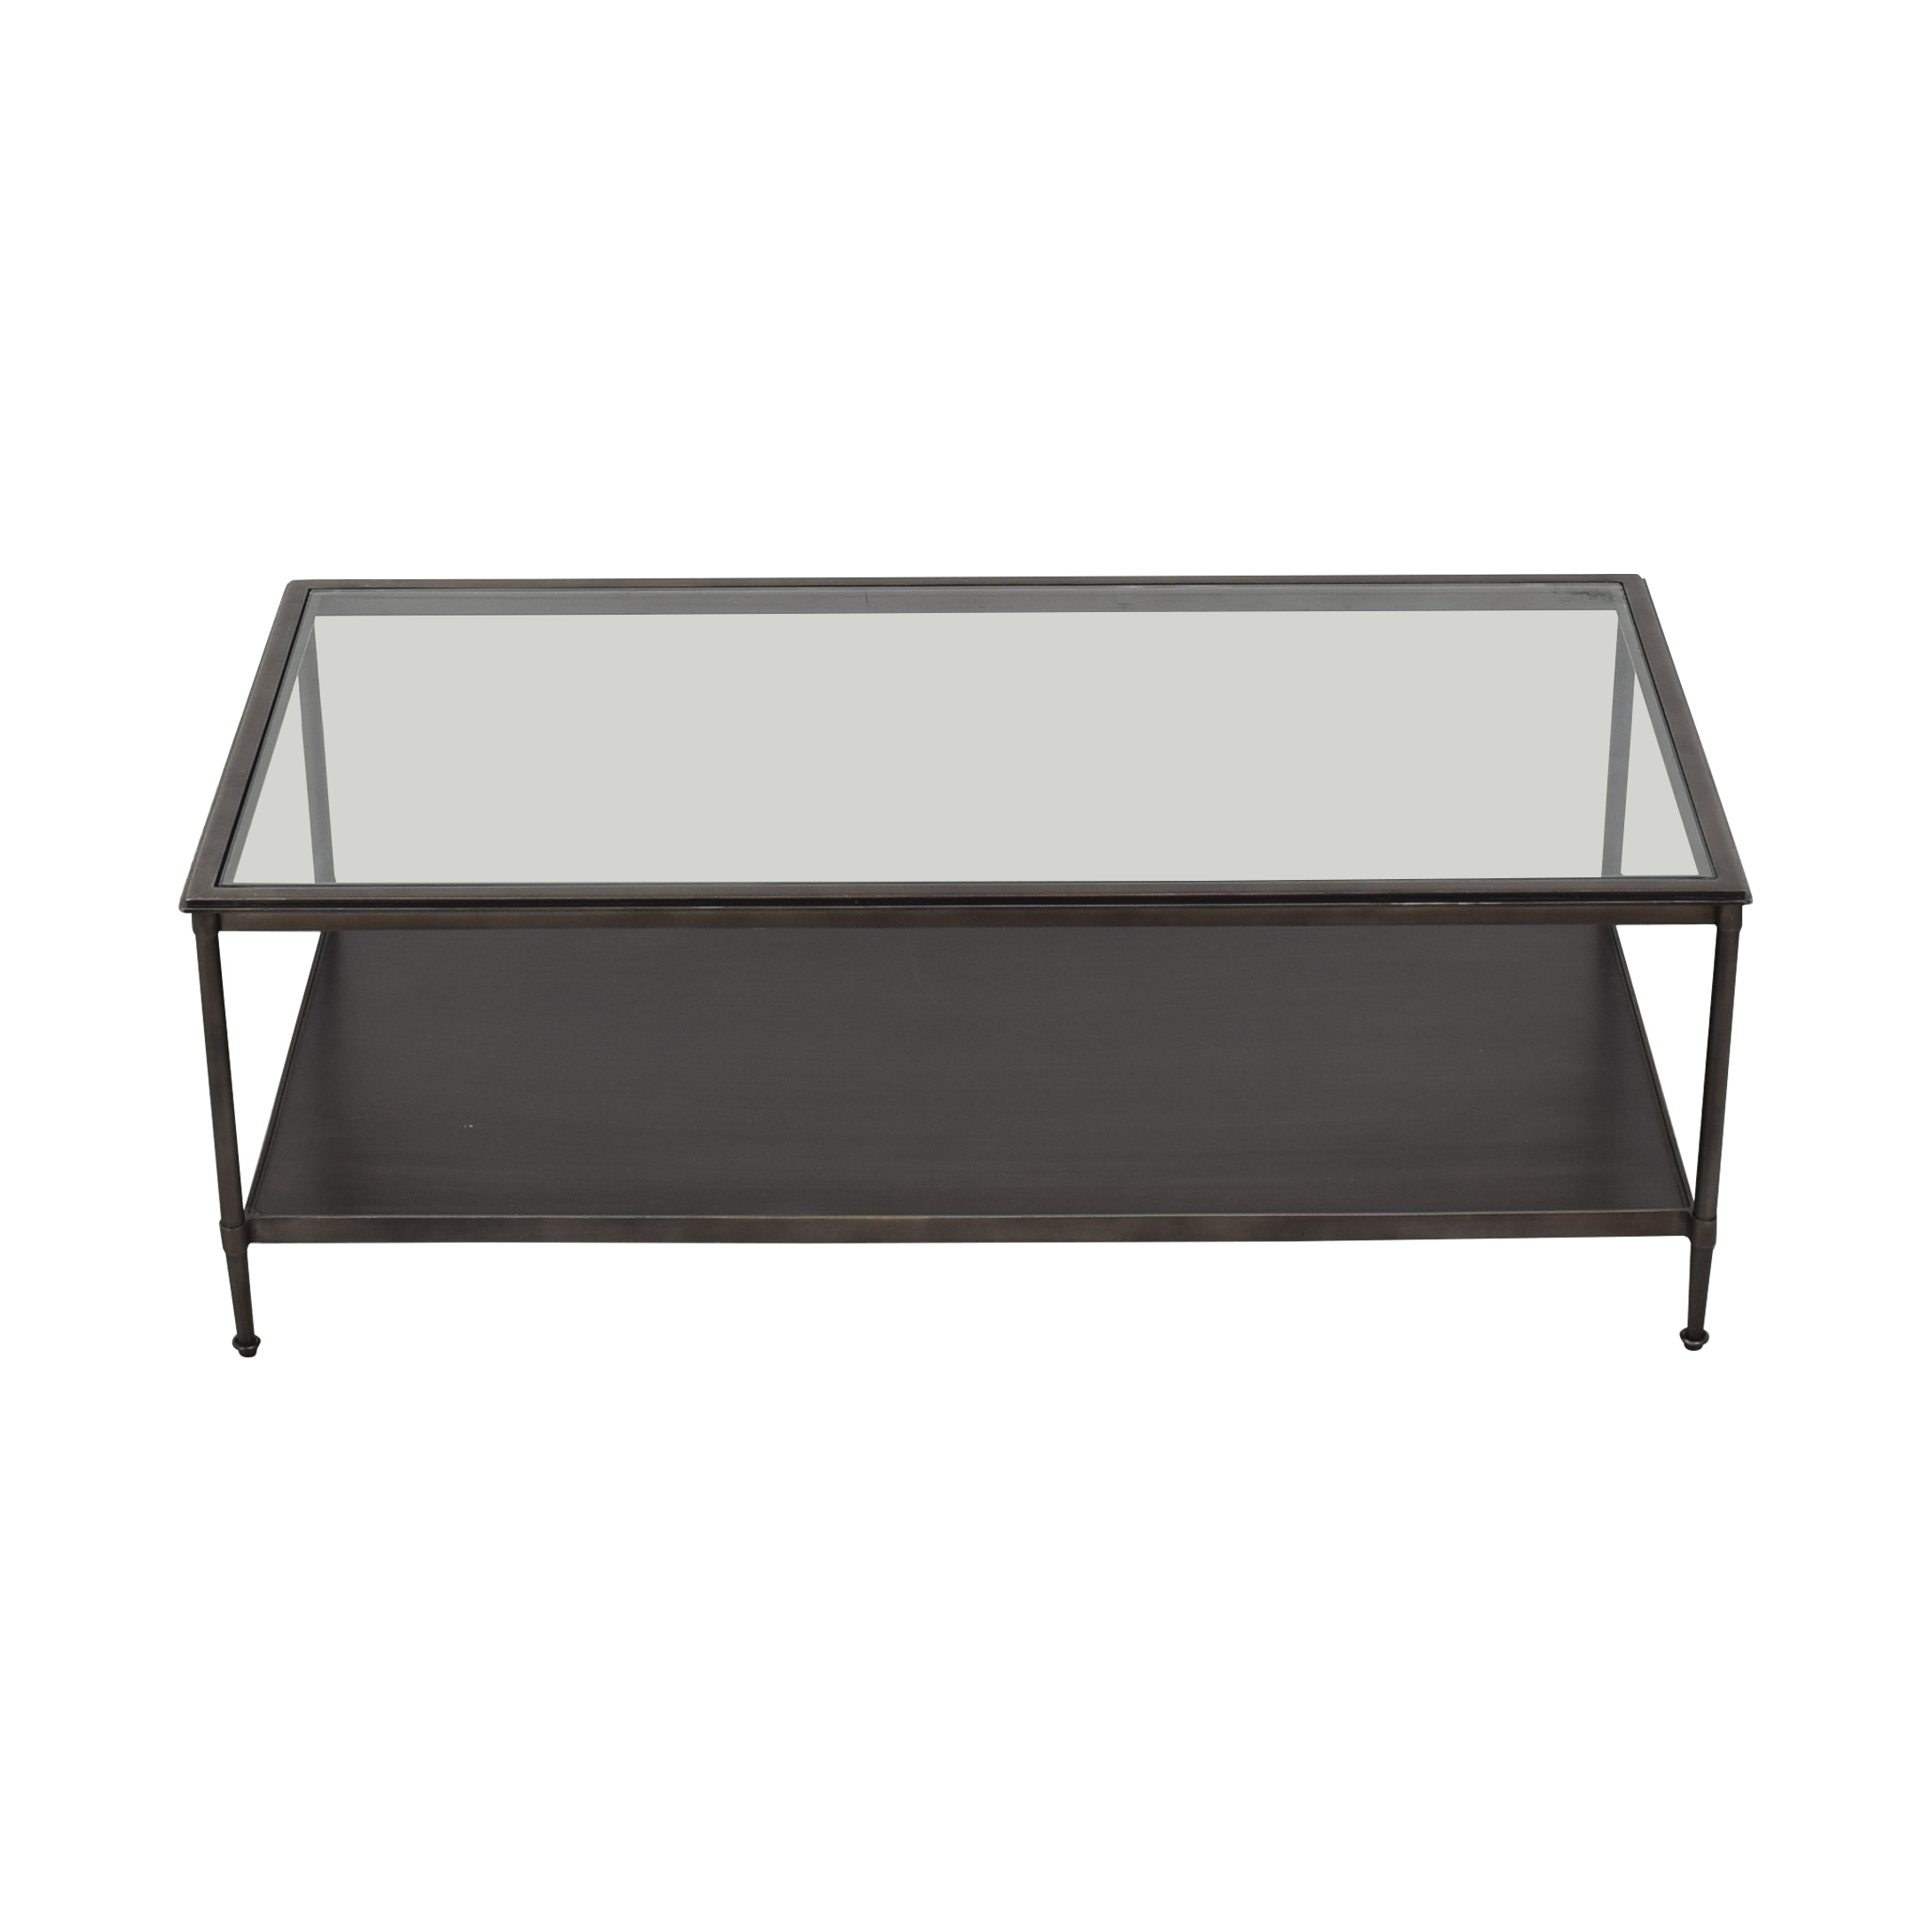 buy Crate & Barrel Kyra Coffee Table Crate & Barrel Coffee Tables